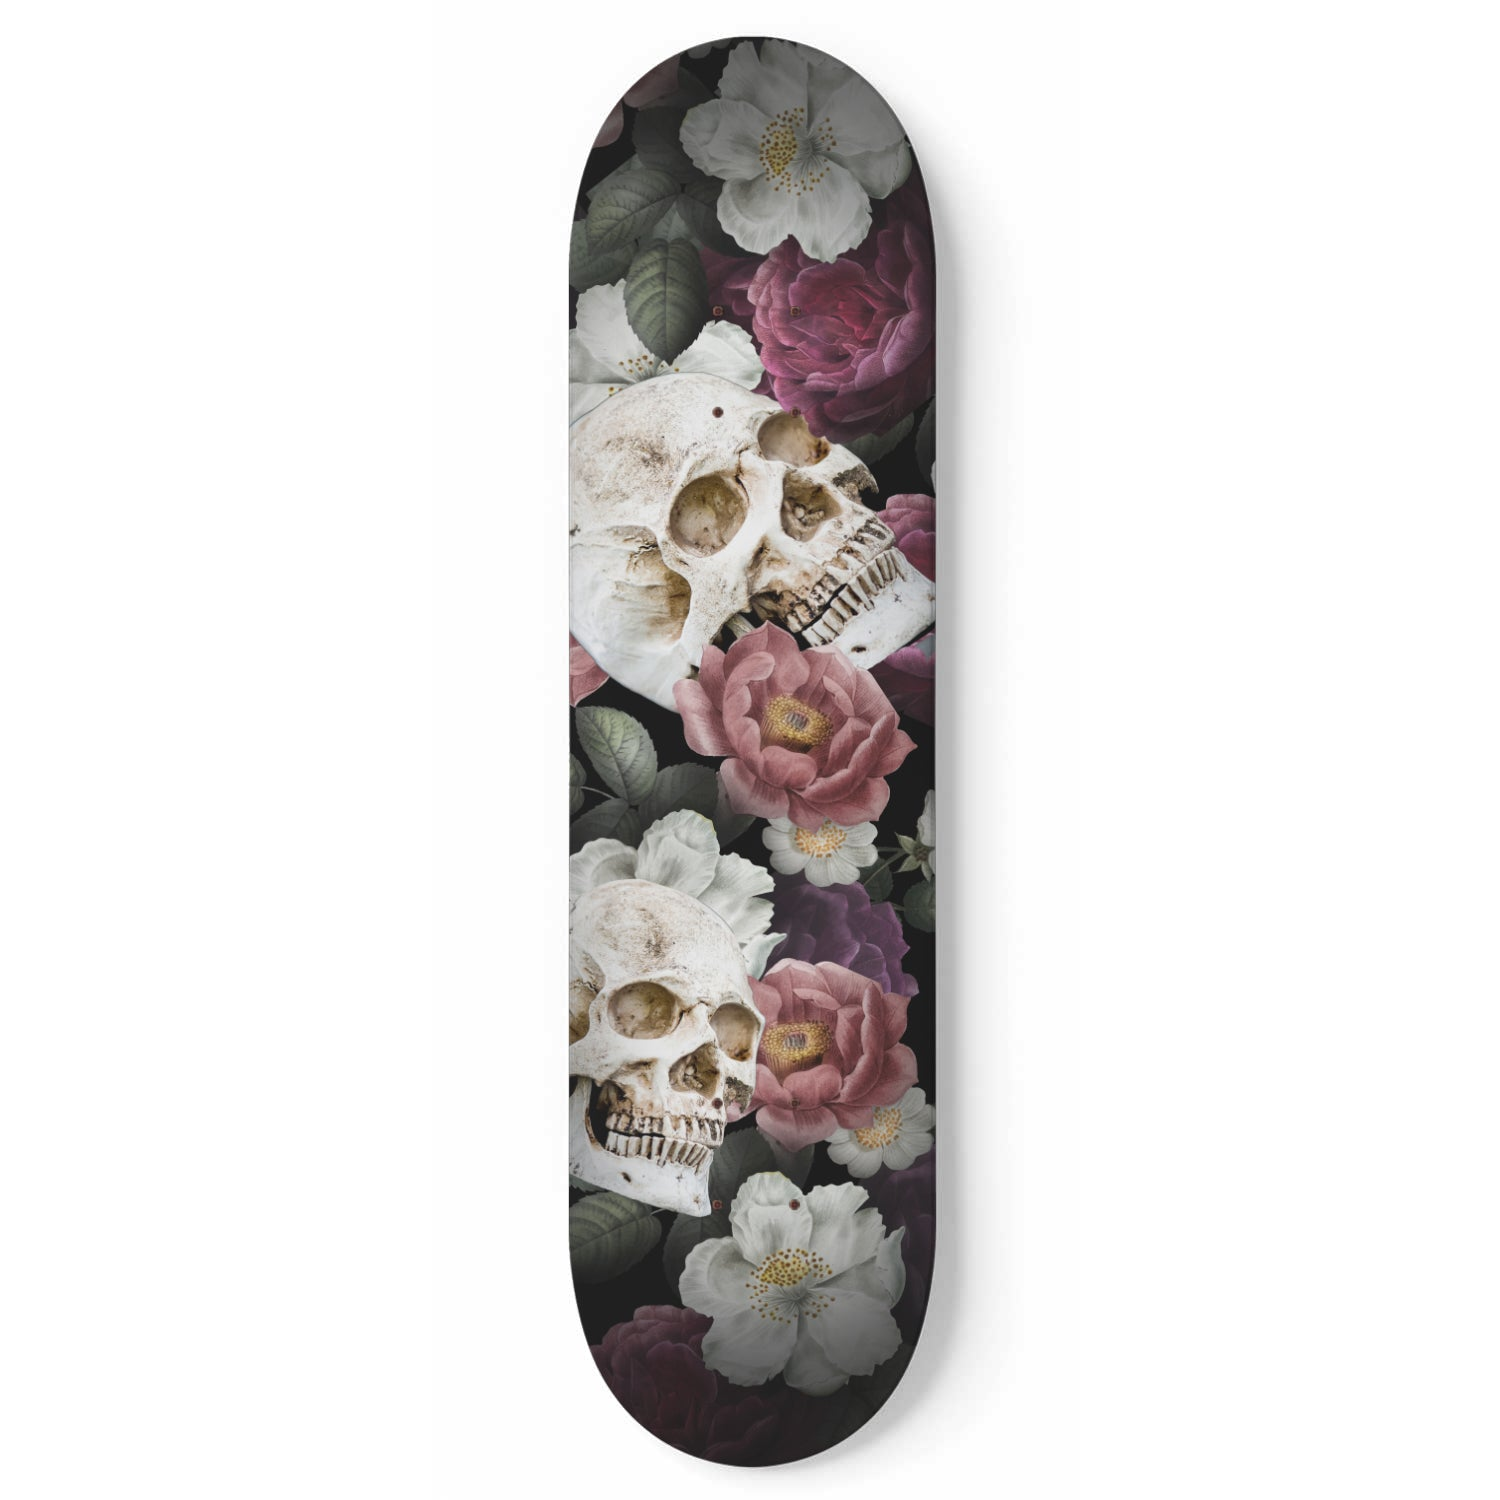 Floral Skull - 1 Piece Skateboard Wall Art